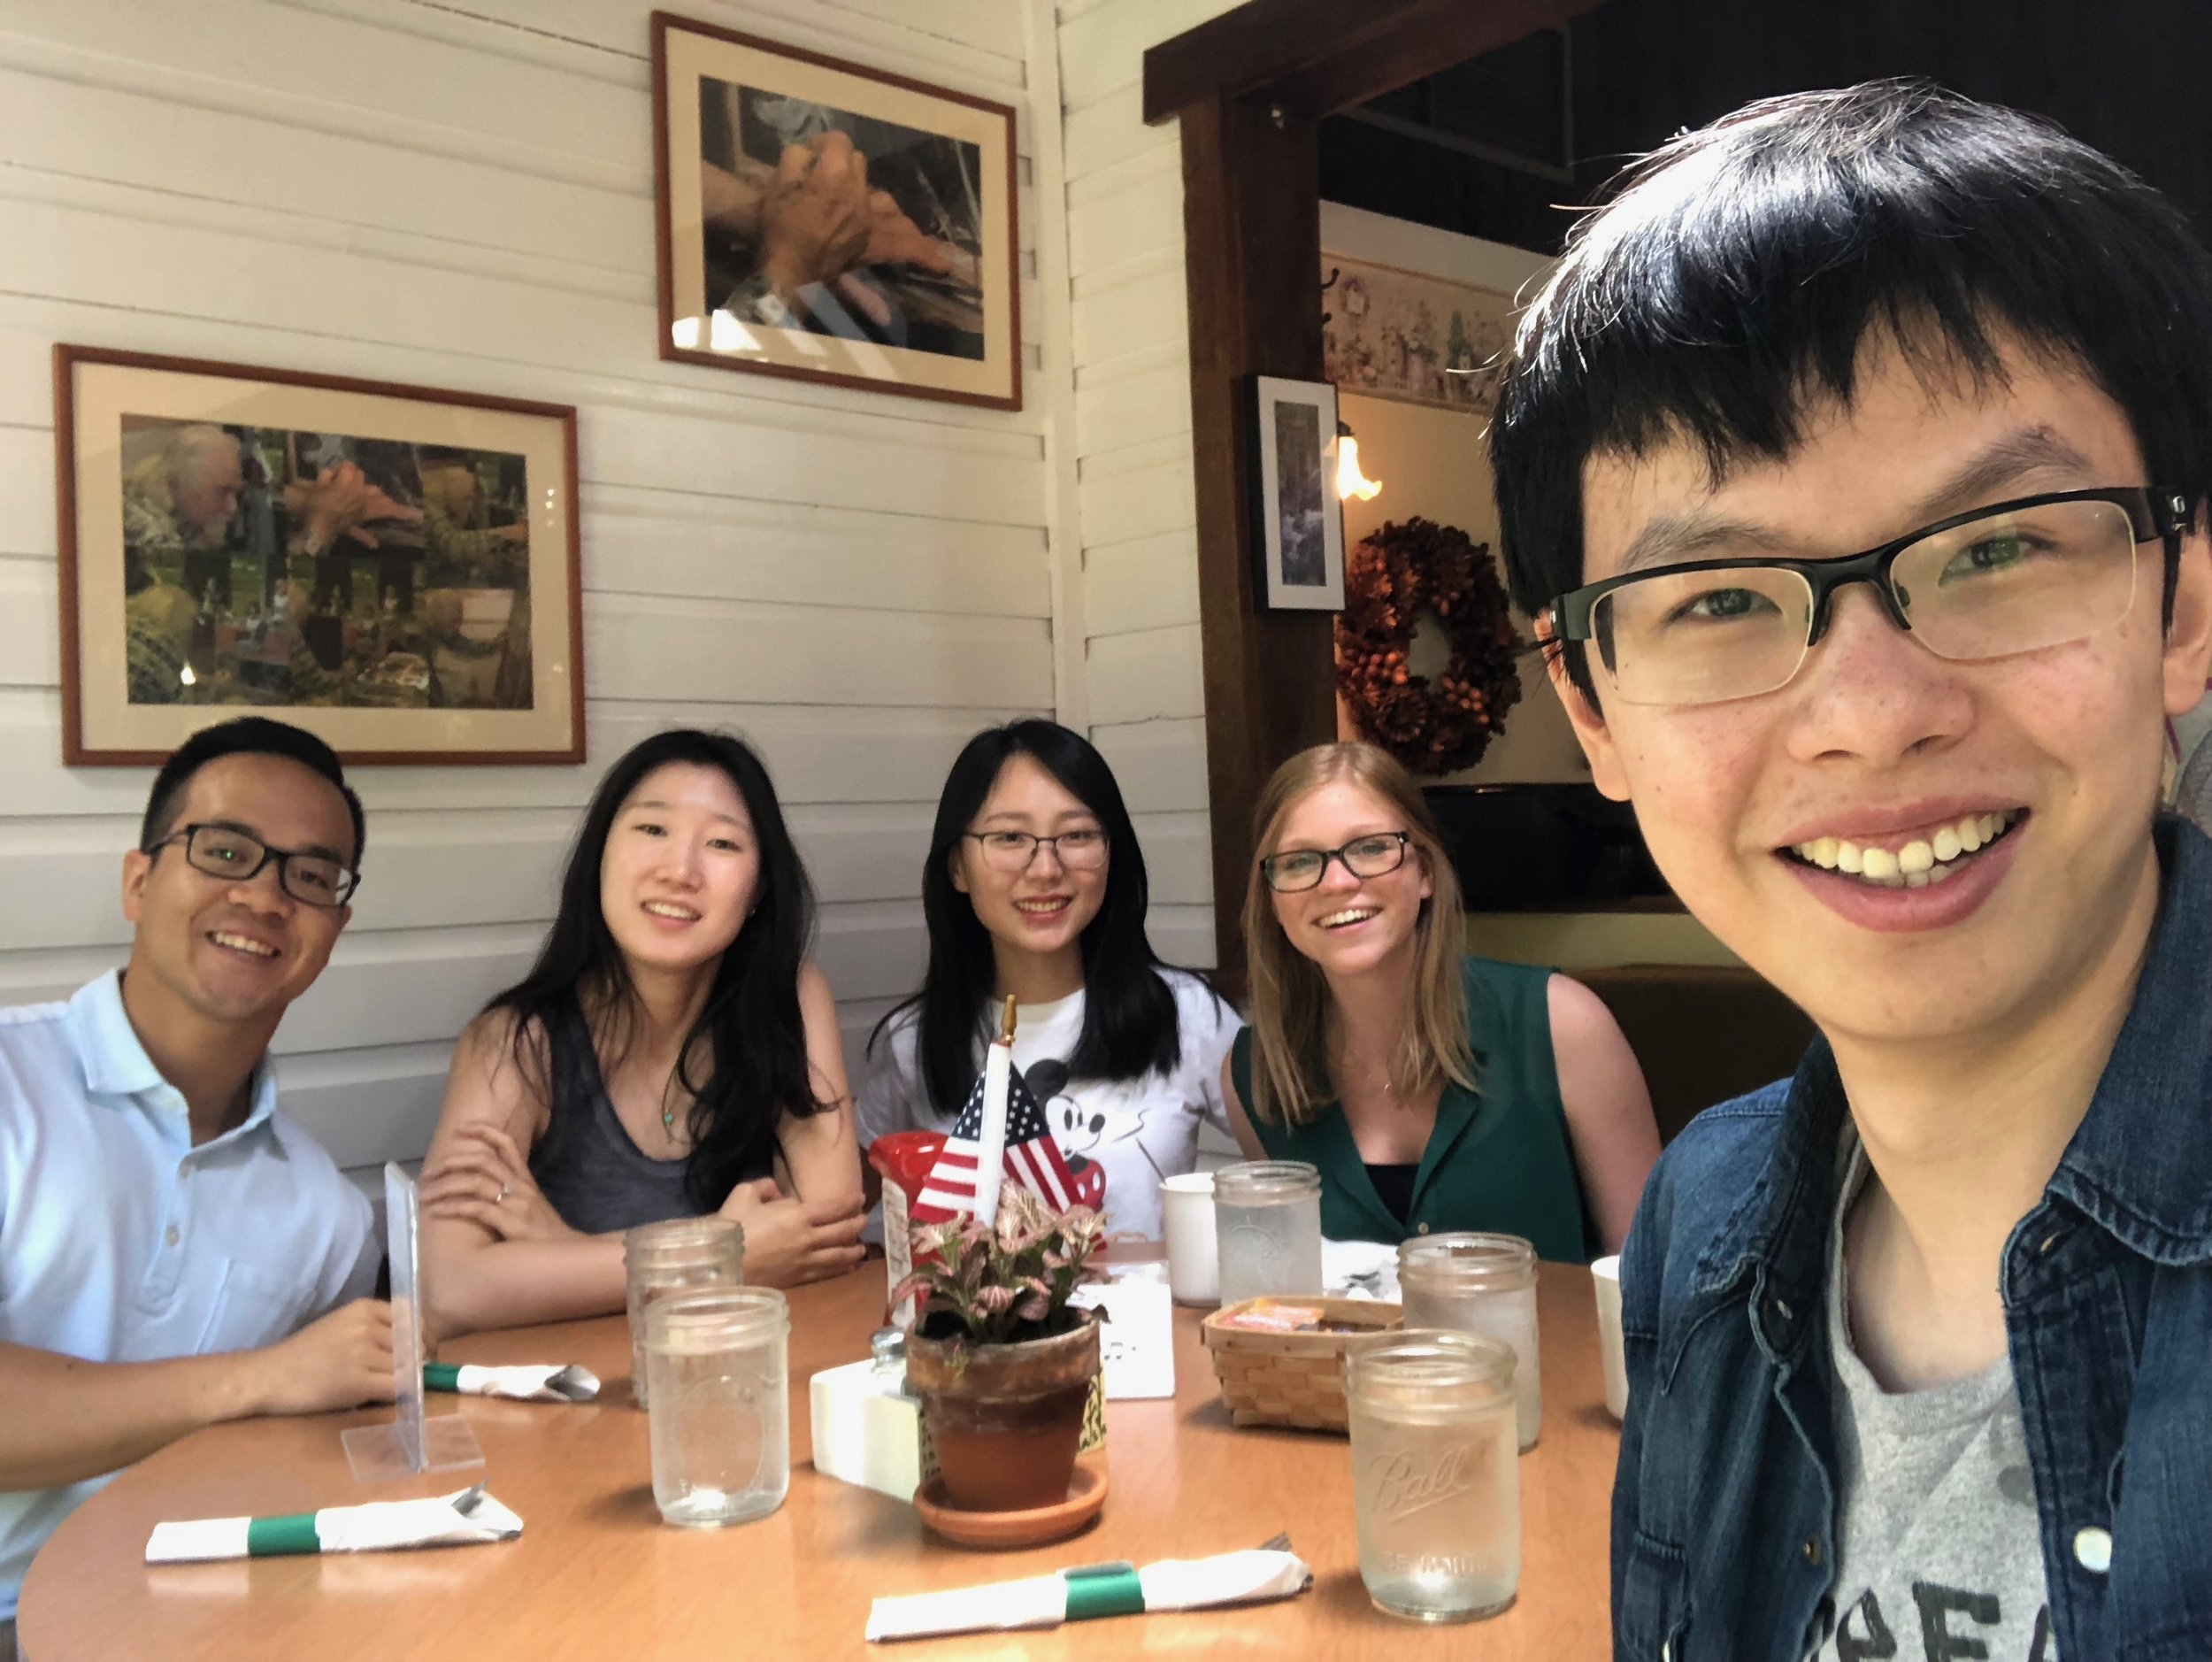 Wren group graduate students out for a meal in New Hampshire while attending the 2018 Aqueous Corrosion Conference GRC.